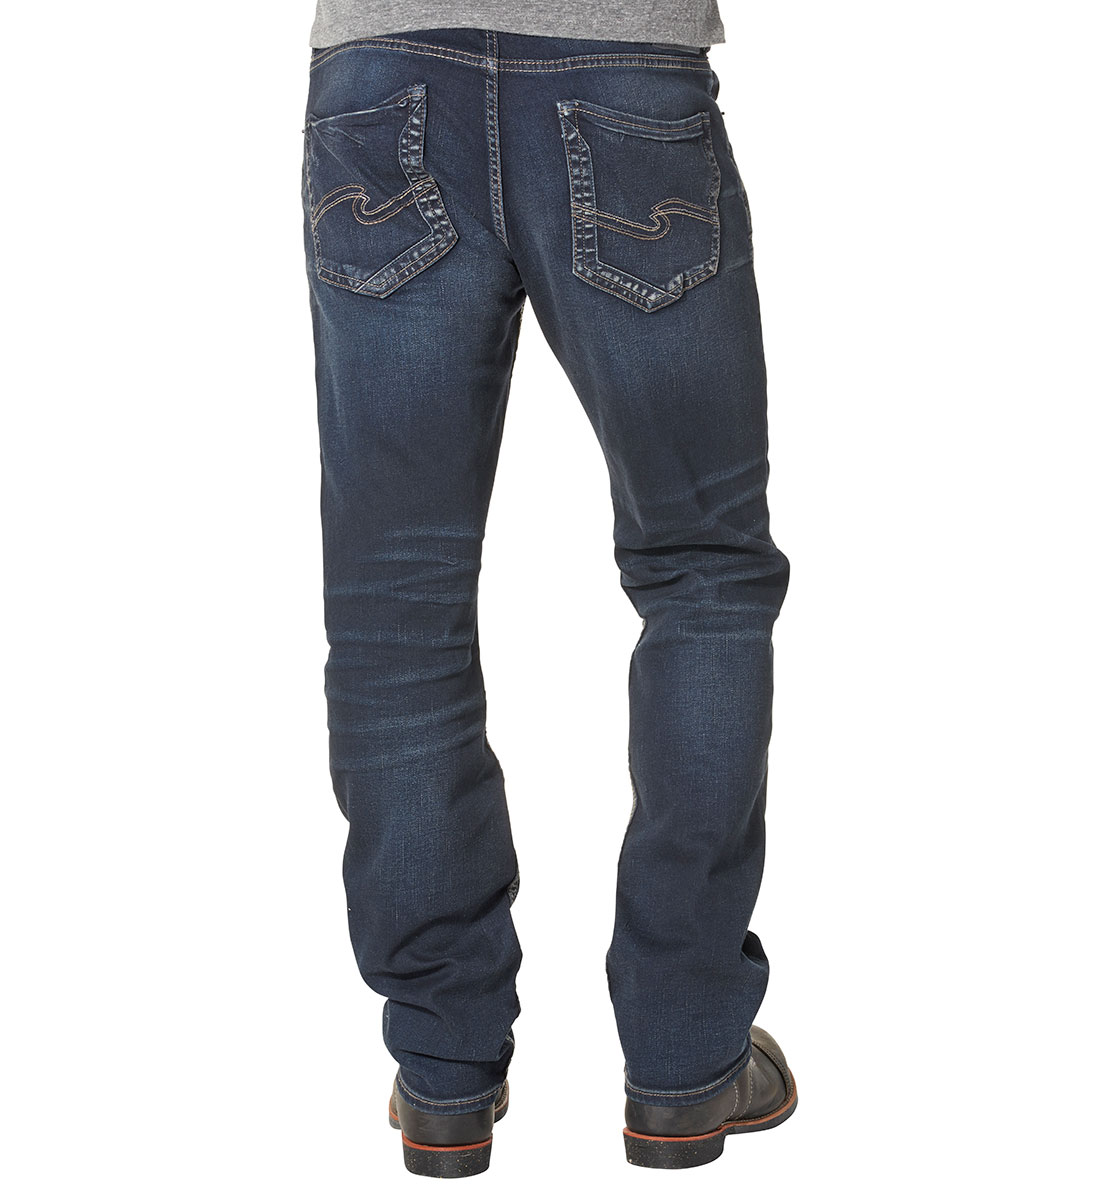 Grayson Dark Wash - BIG & TALL, , hi-res